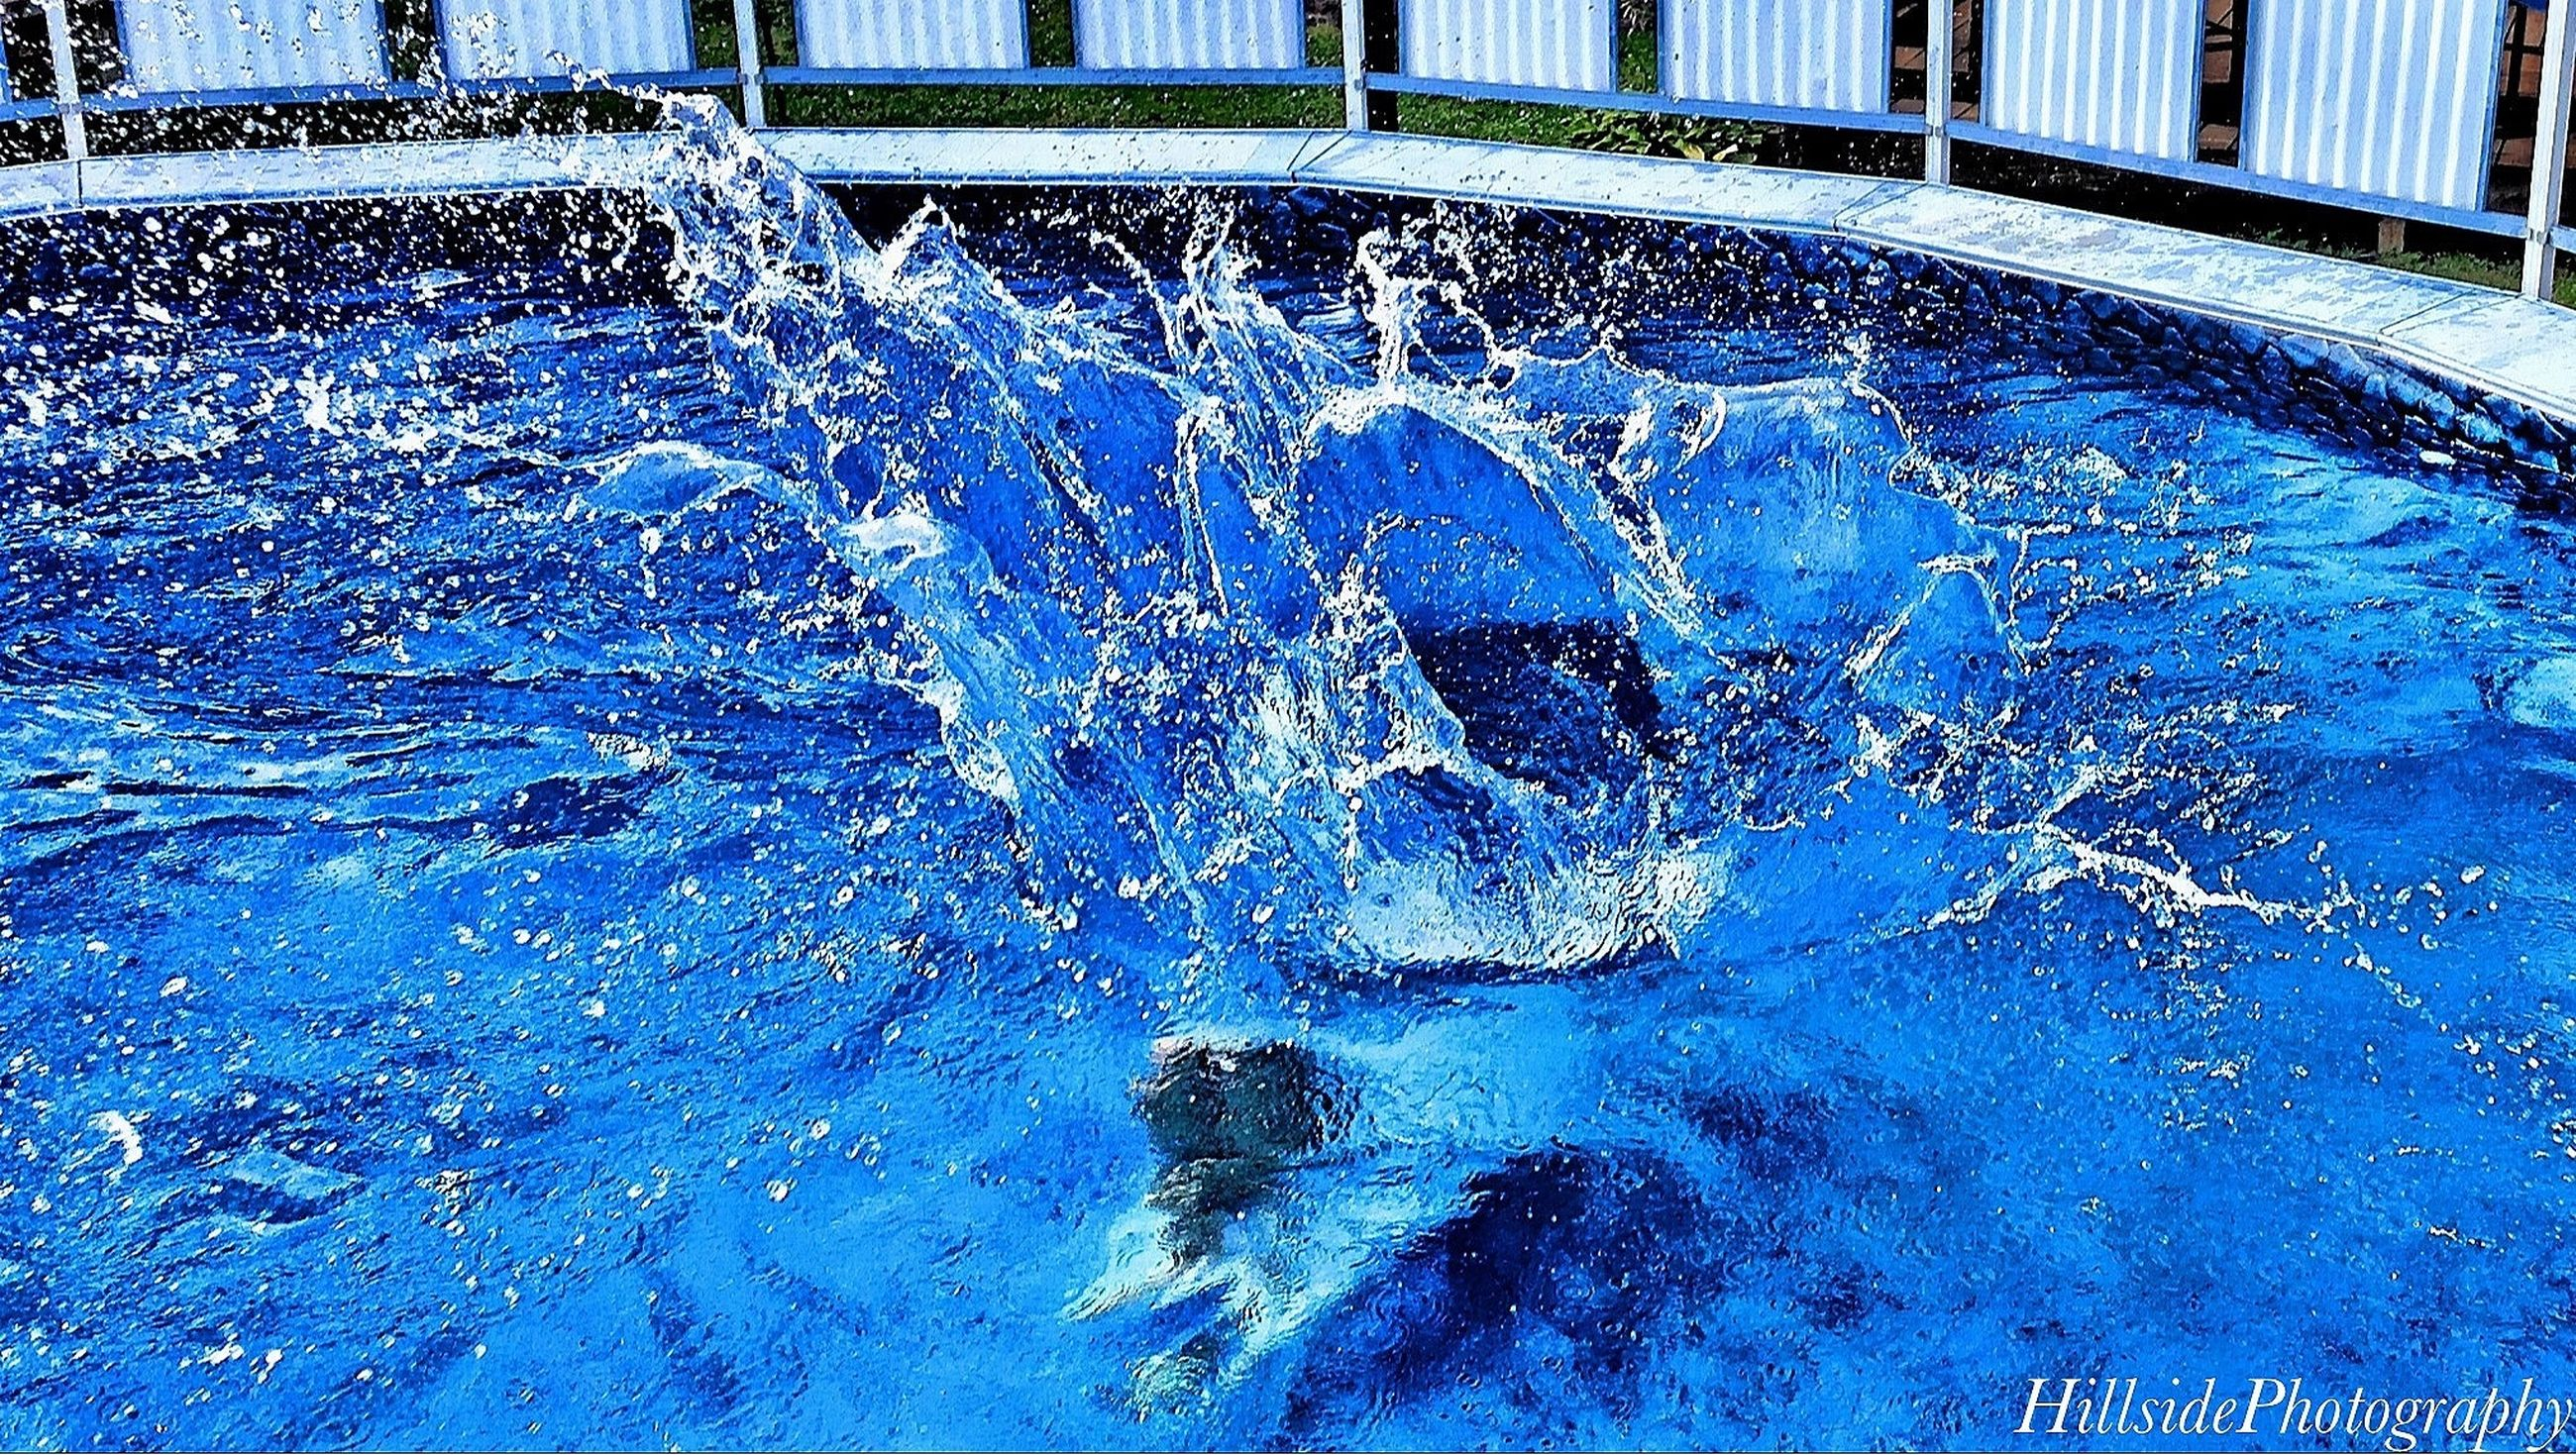 water, fountain, splashing, swimming pool, reflection, wet, built structure, architecture, building exterior, drop, motion, art, blue, spraying, art and craft, creativity, glass - material, puddle, bubble, transparent